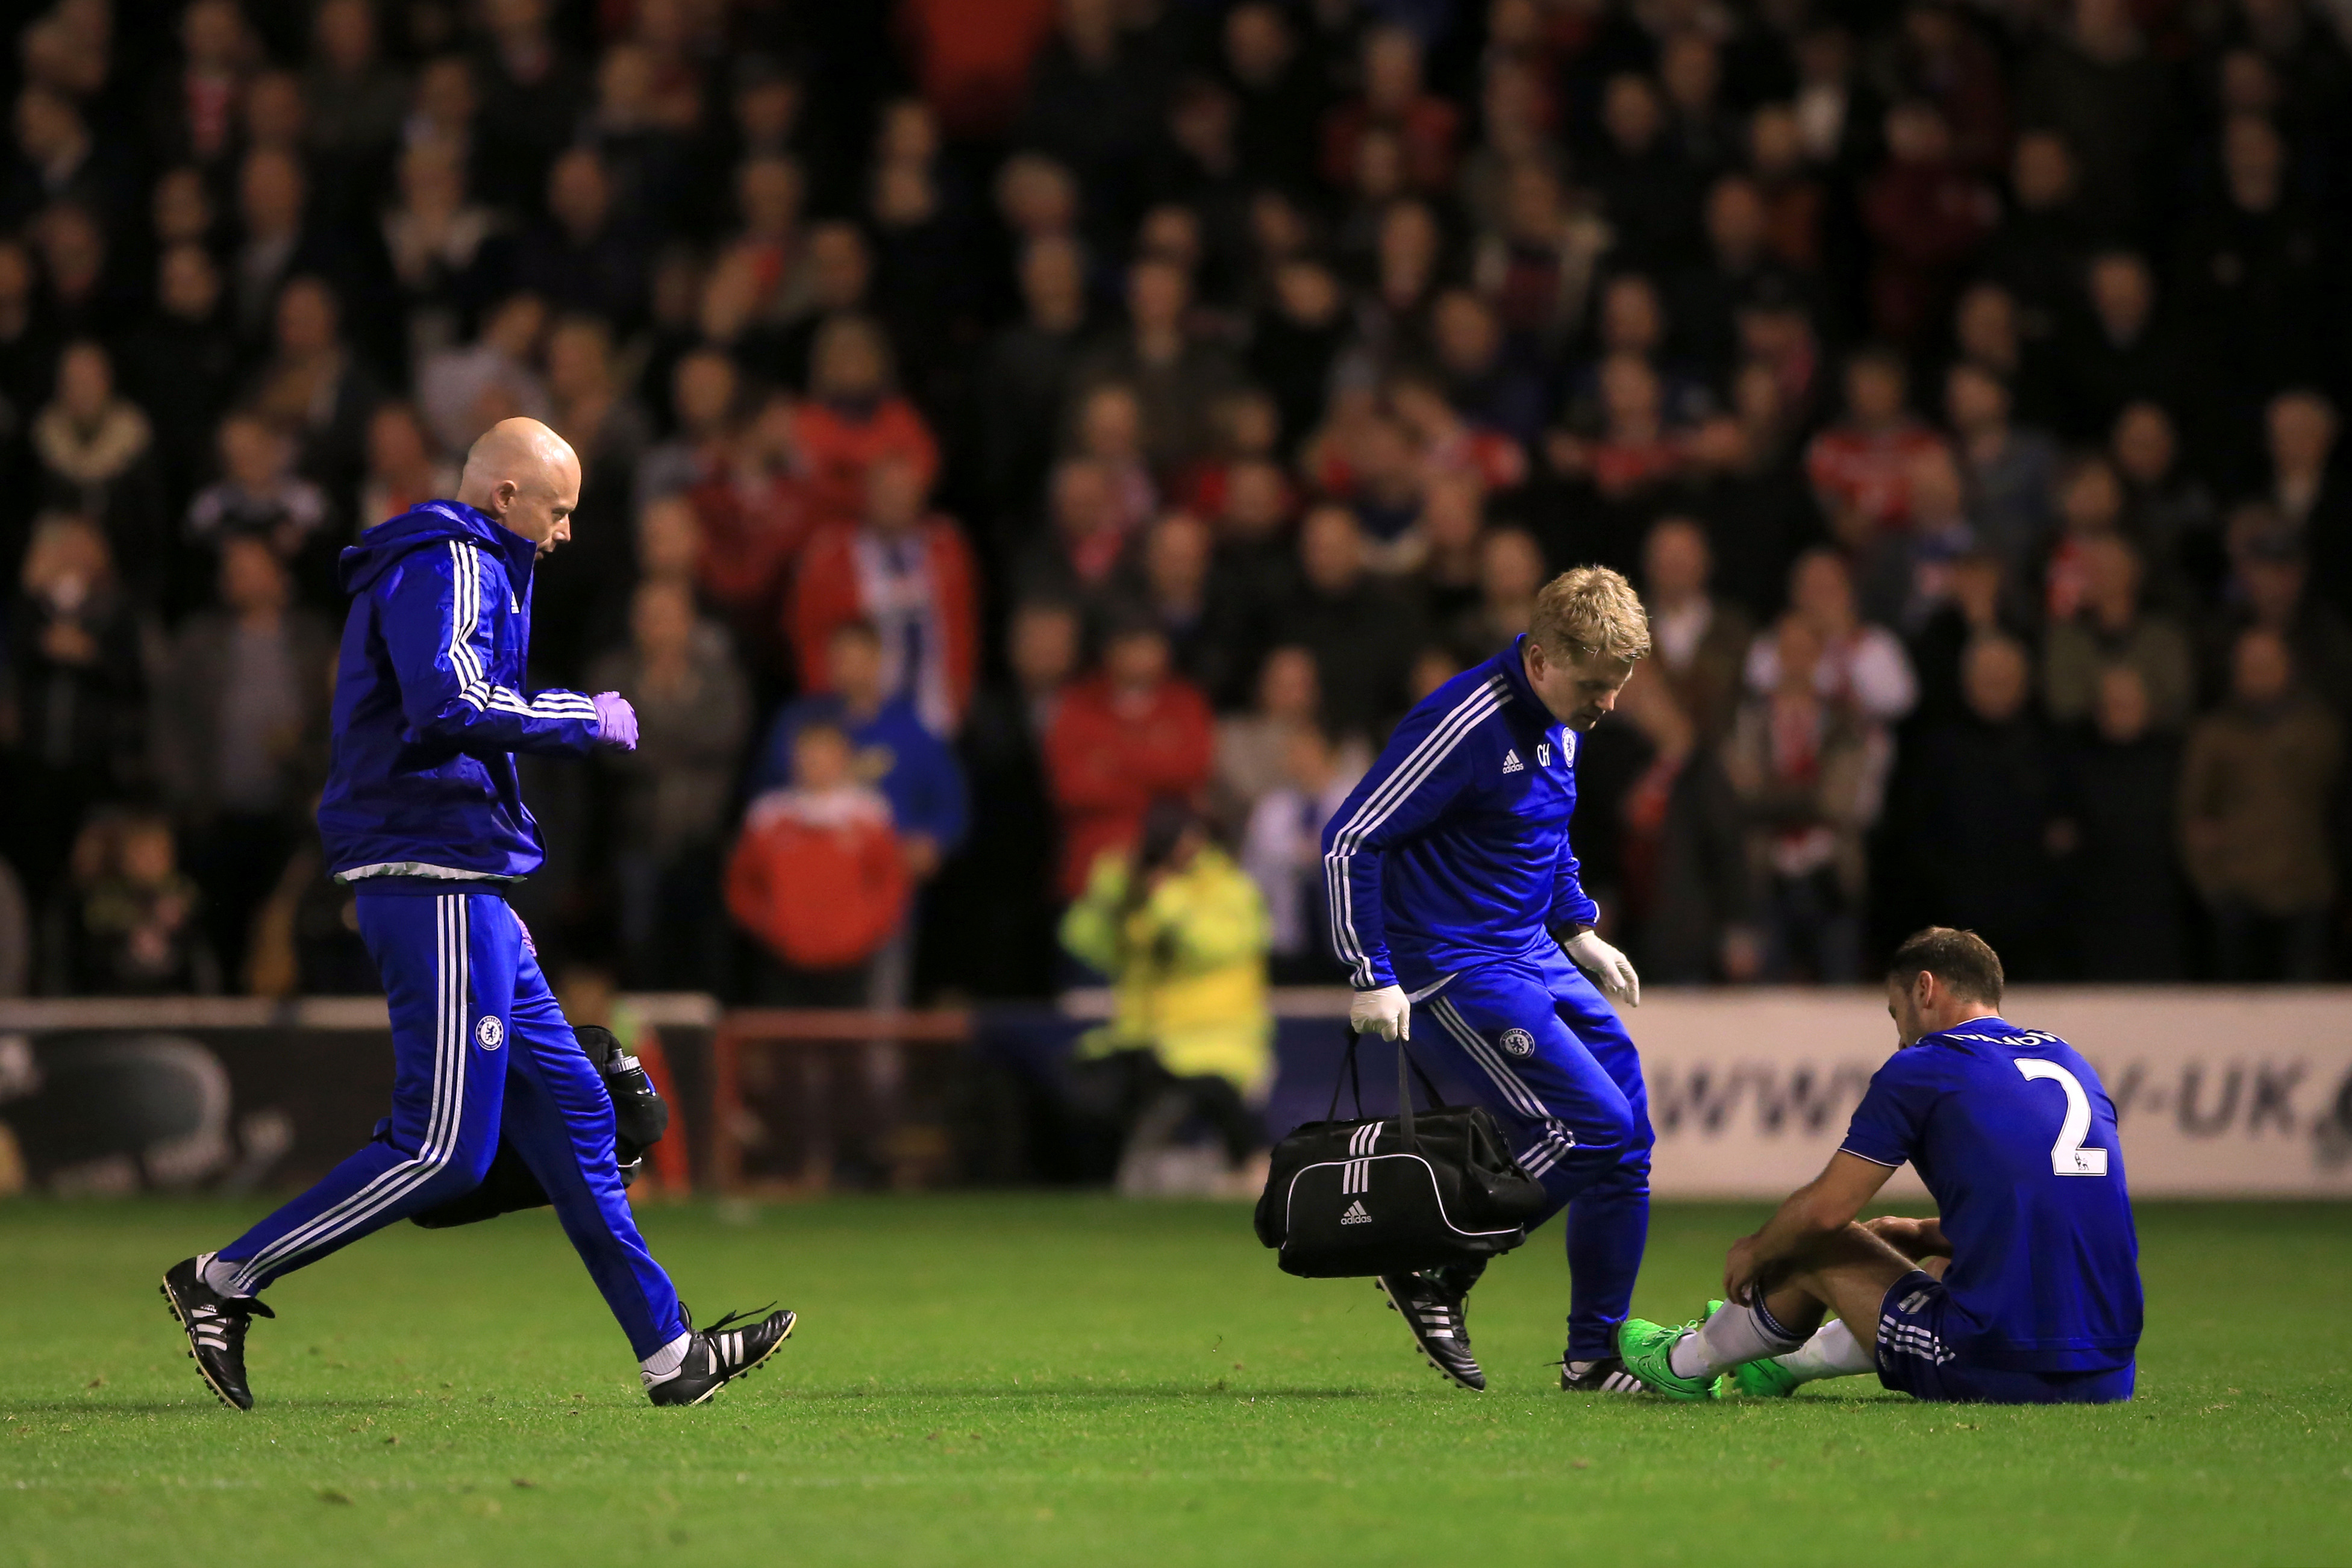 Chelsea doctor Chris Hughes (centre) and physiotherapist Steven Hughes (left) enter the field of play to treat Branislav Ivanovic during the Capital One Cup, third round match at Banks' Stadium, Walsall.